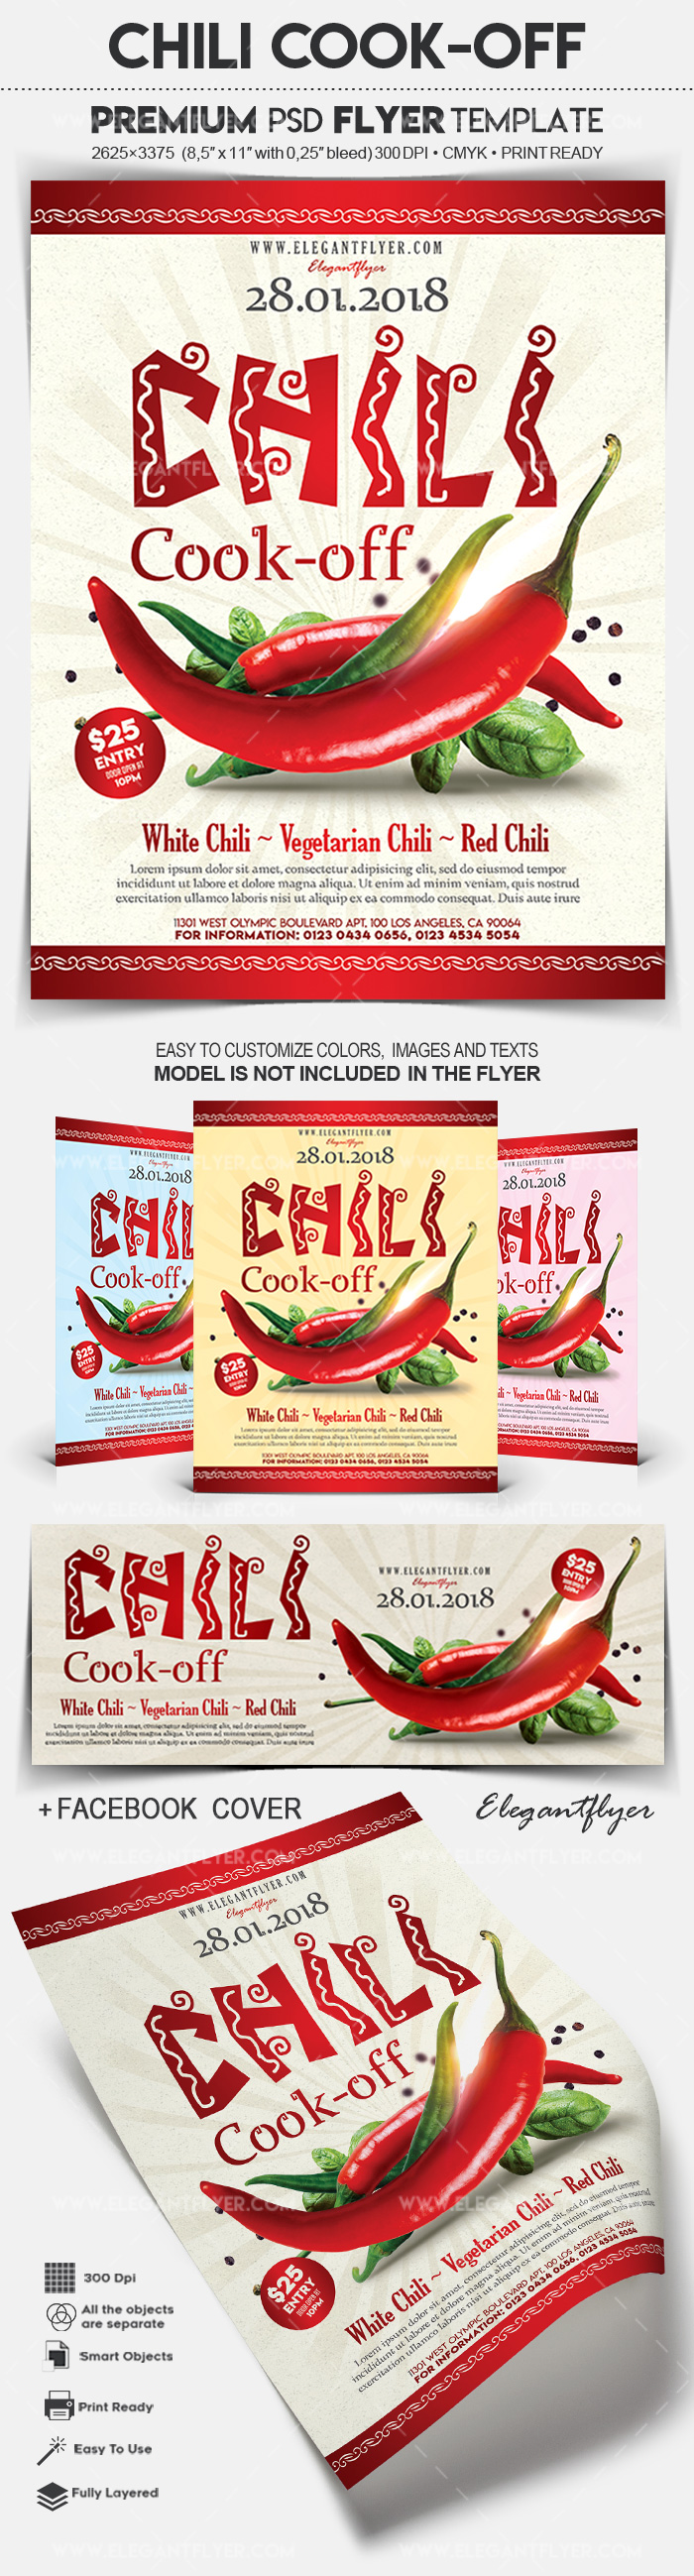 Chili Cook-off – Flyer PSD Template